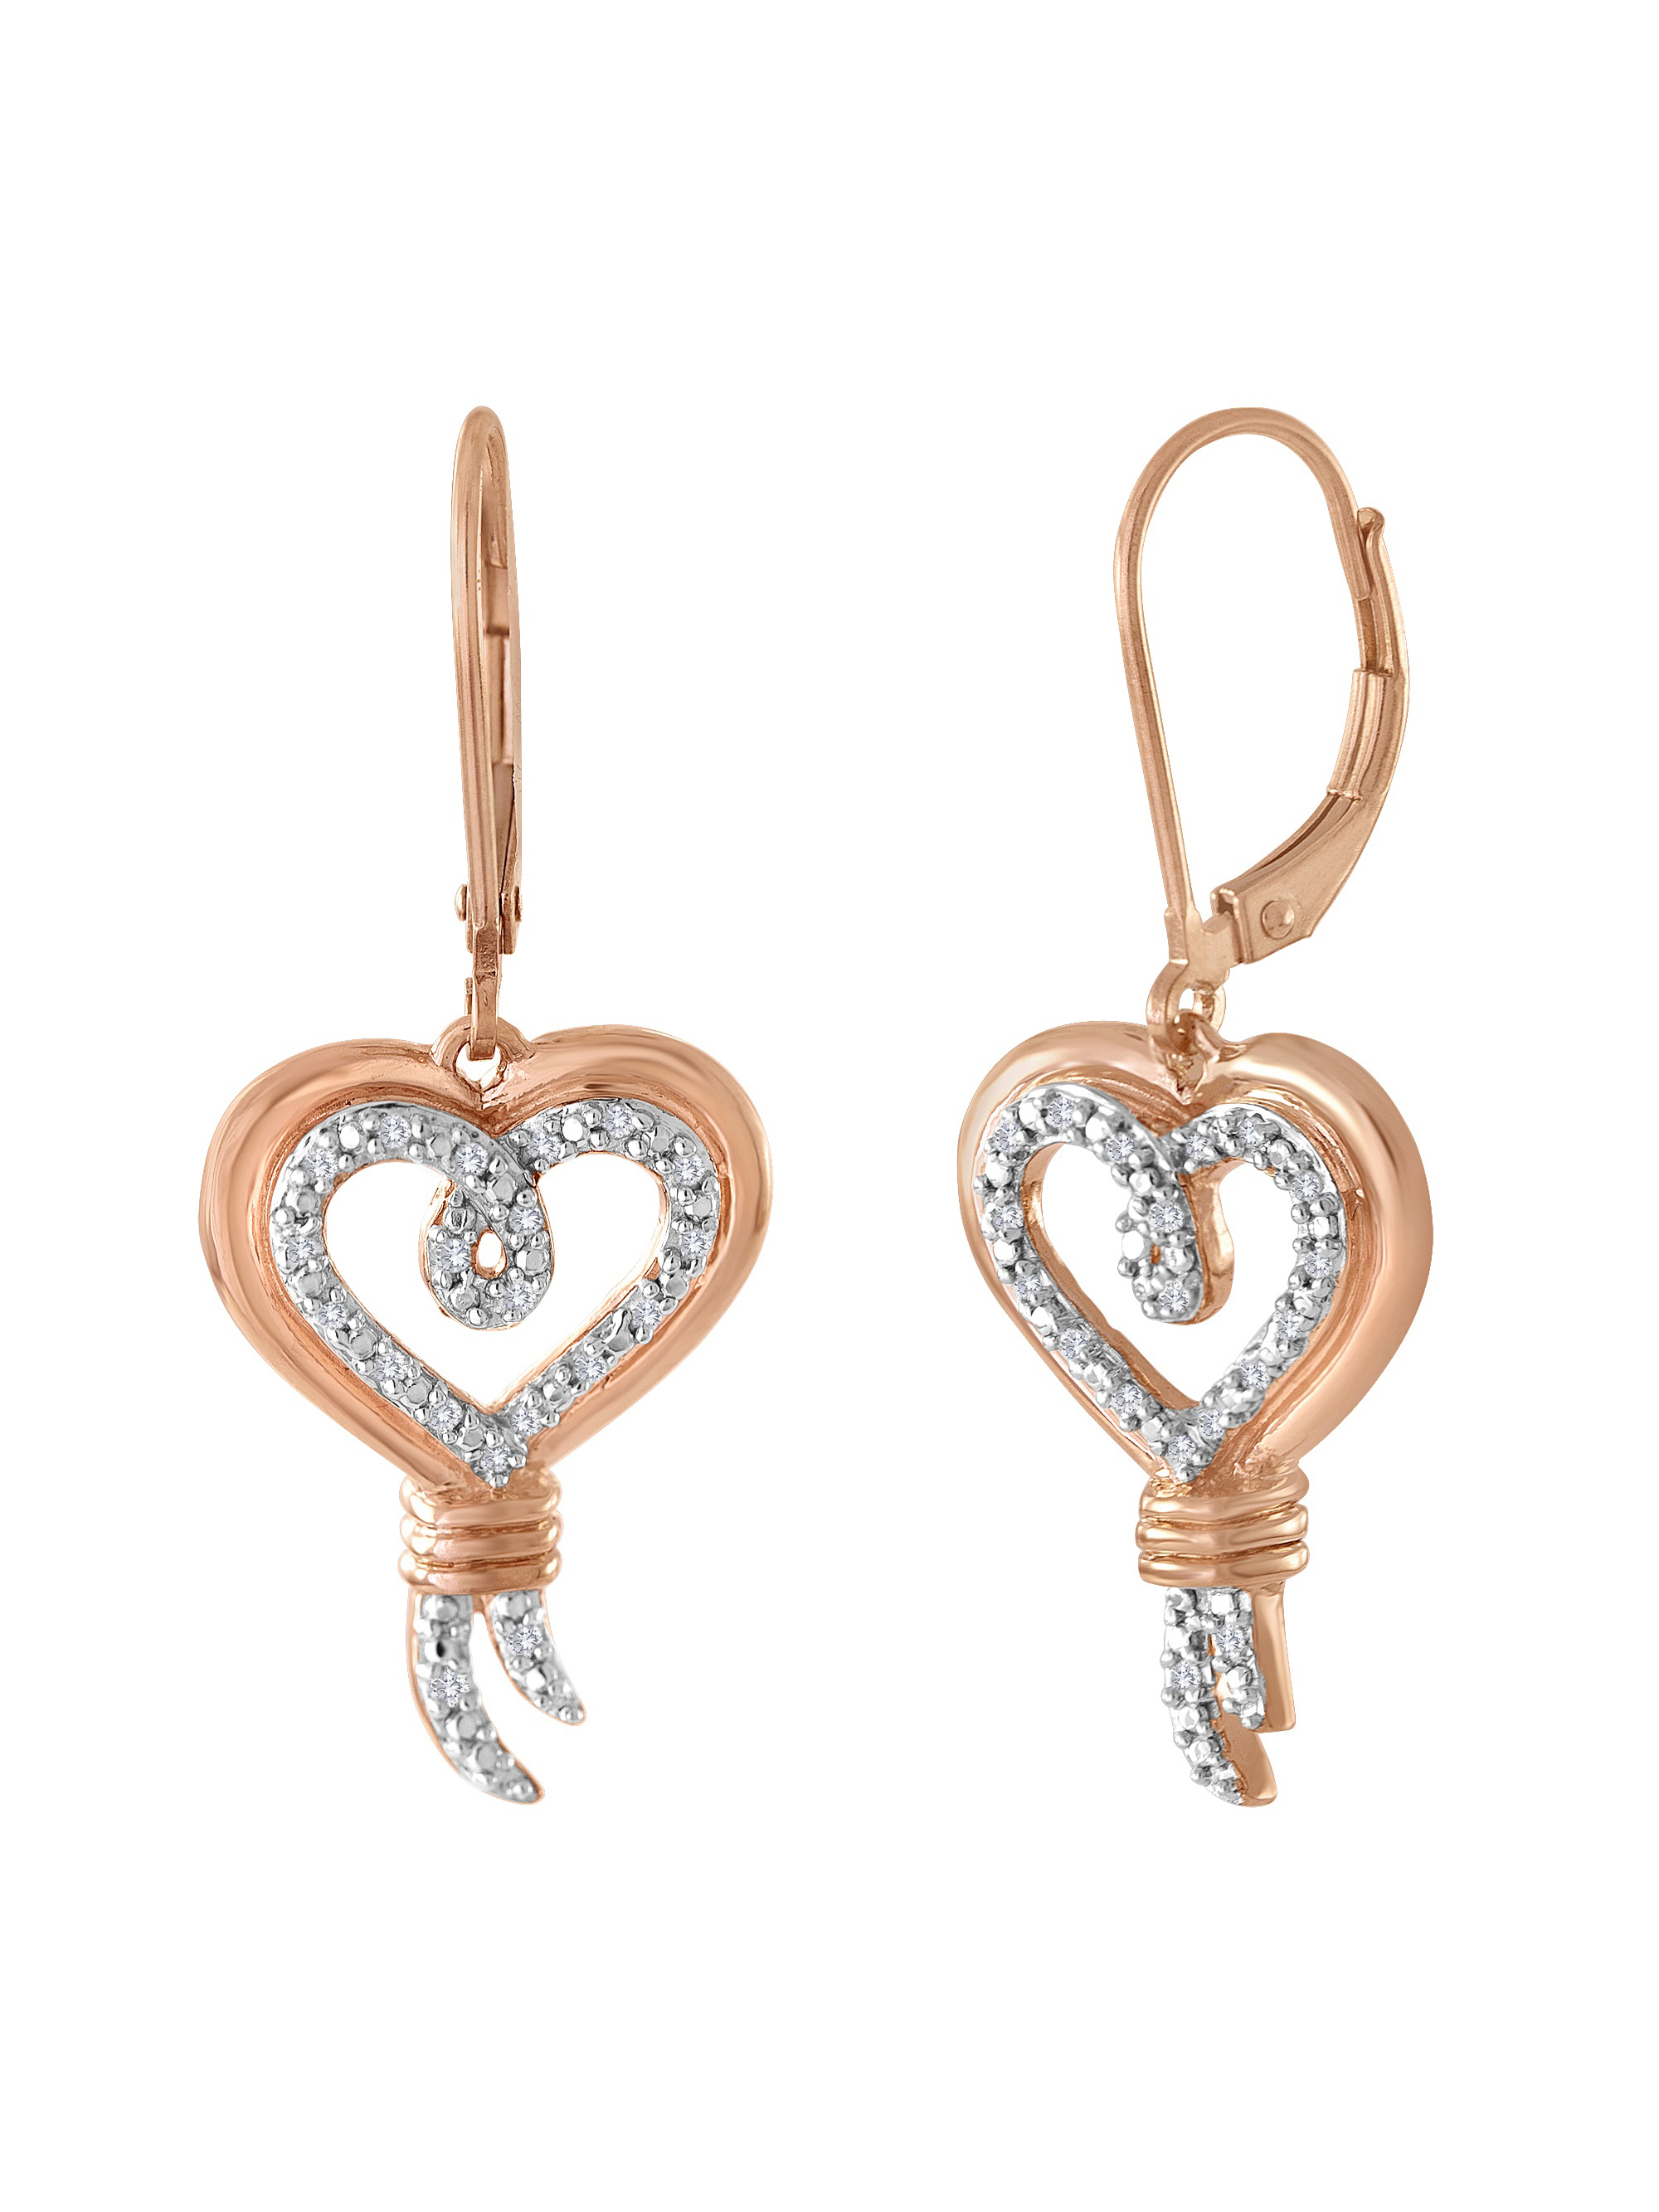 Knots of Love 14kt Rose Gold over Sterling Silver 1/10 Carat T.W. Diamond Earring